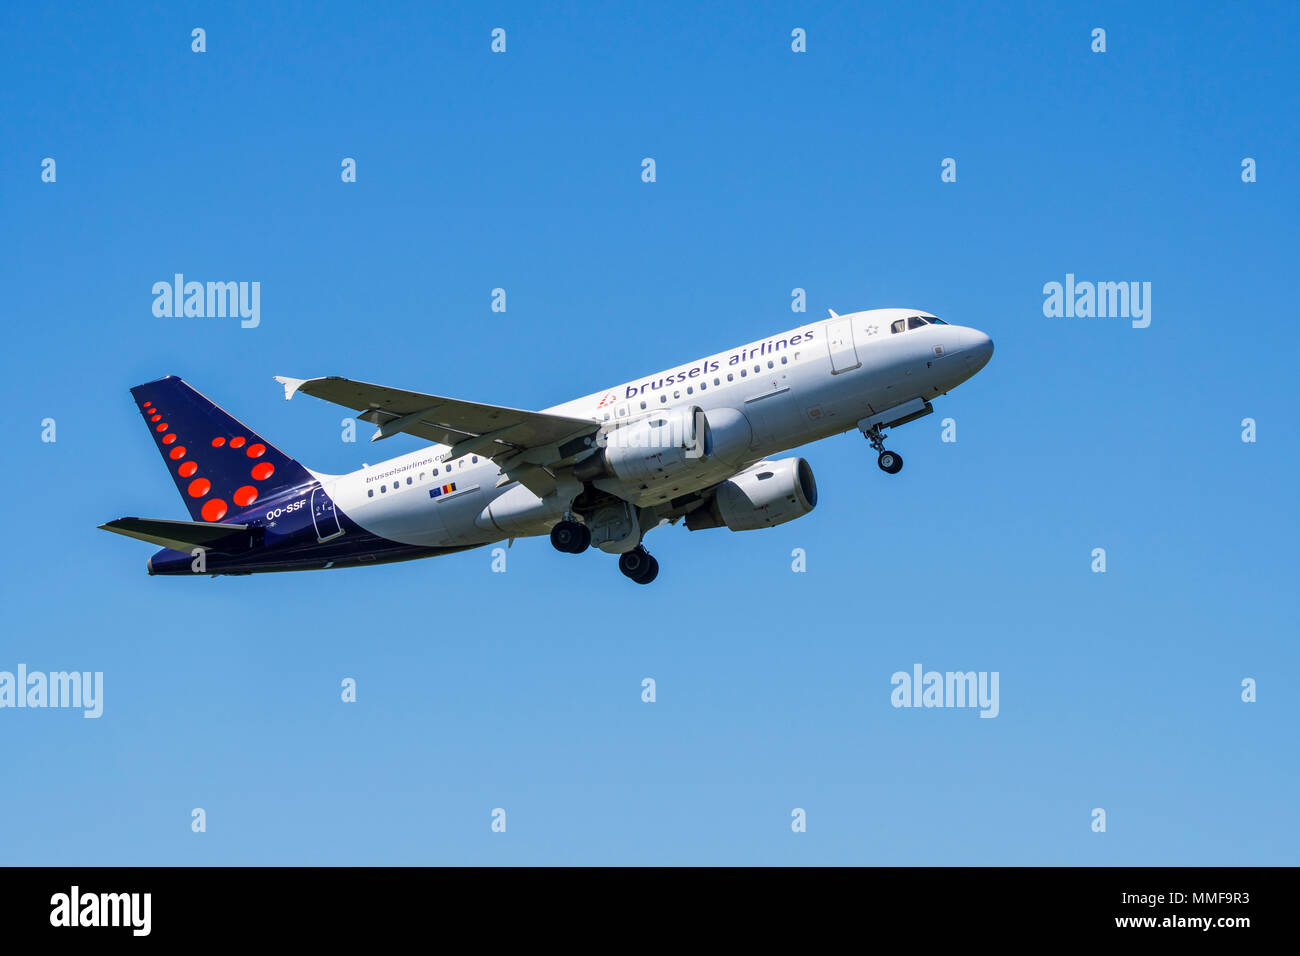 Airbus A319-111 from Brussels Airlines in flight above the Brussels-National airport, Zaventem, Belgium - Stock Image